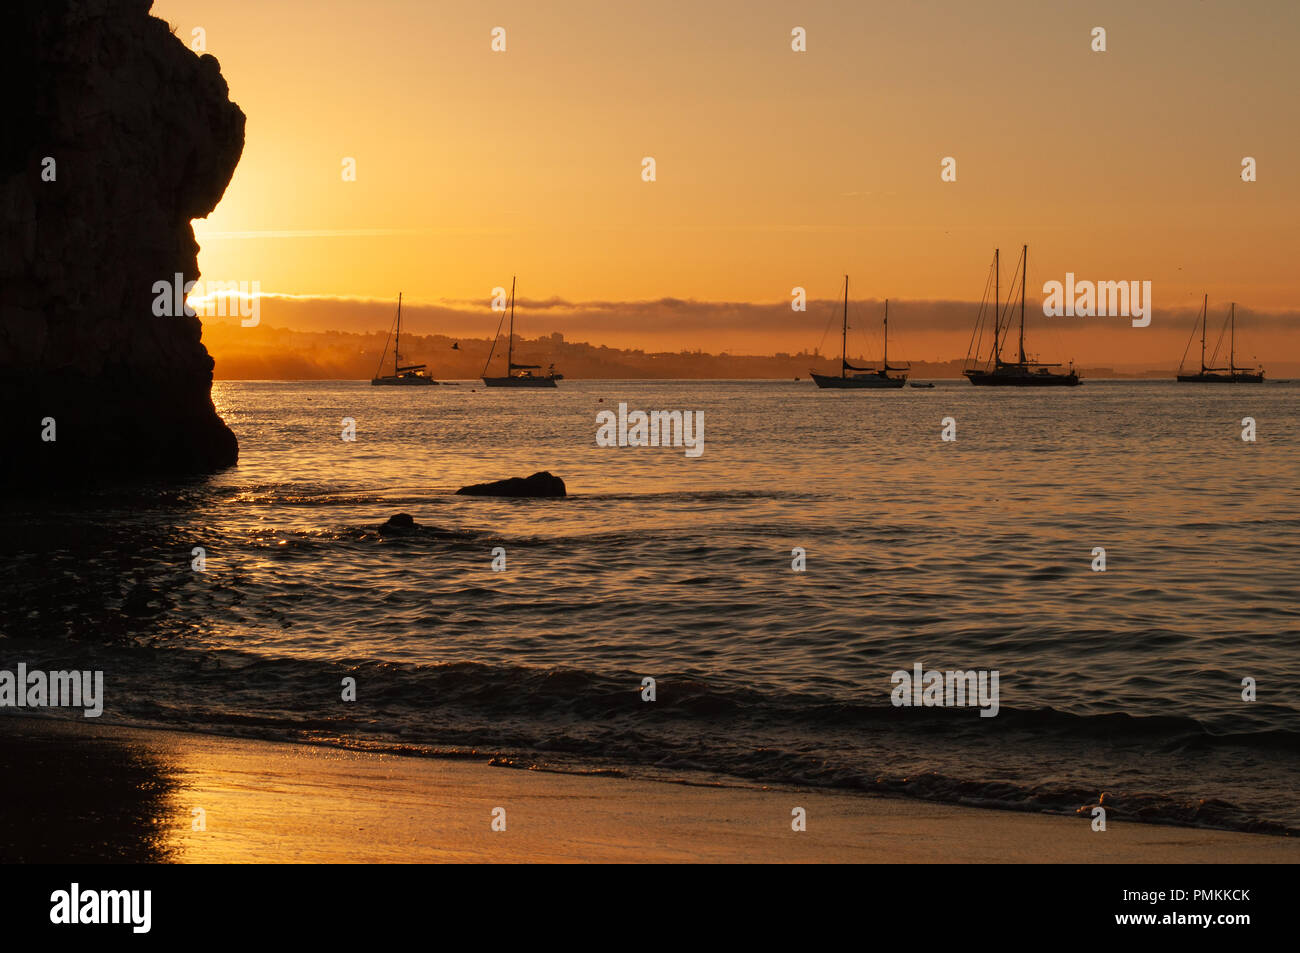 Anchored Sailboats at Daybreak - Stock Image